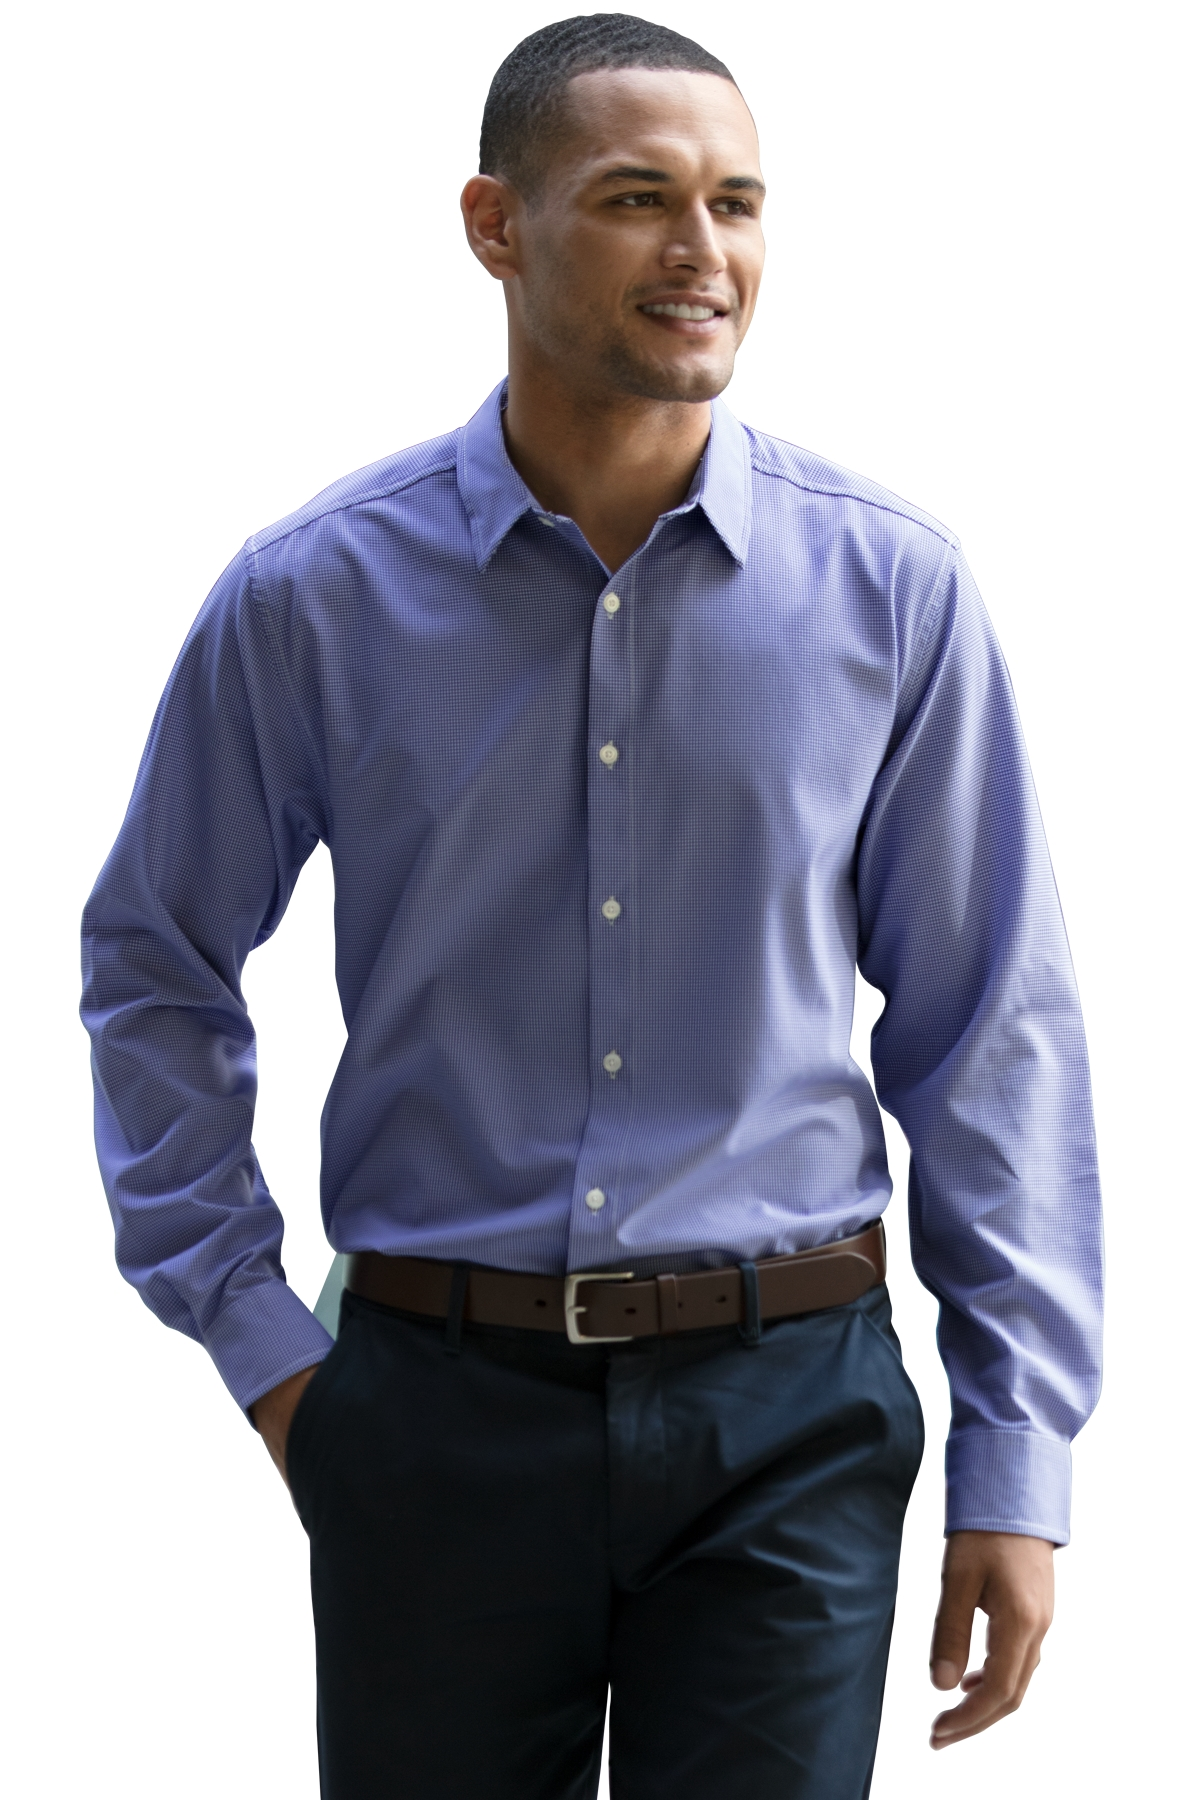 Vantage 1250 - Men's Vansport™ Sandhill Dress Shirt